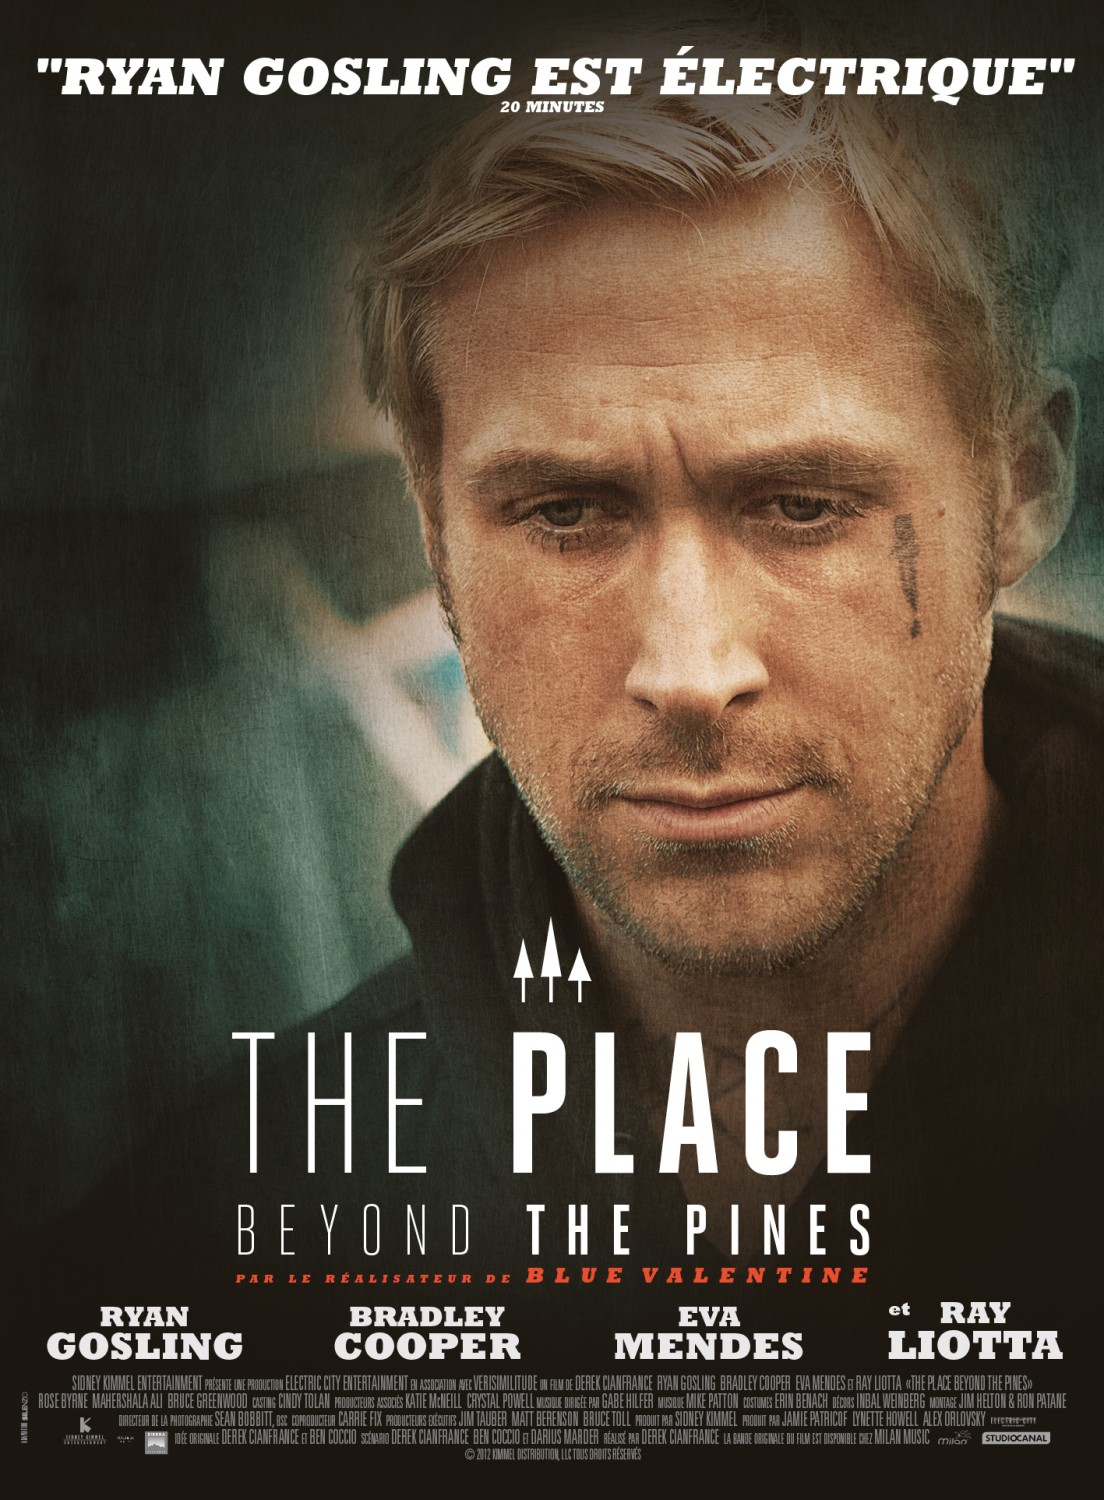 Assistir Filme Online The Place Beyond the Pines Legendado